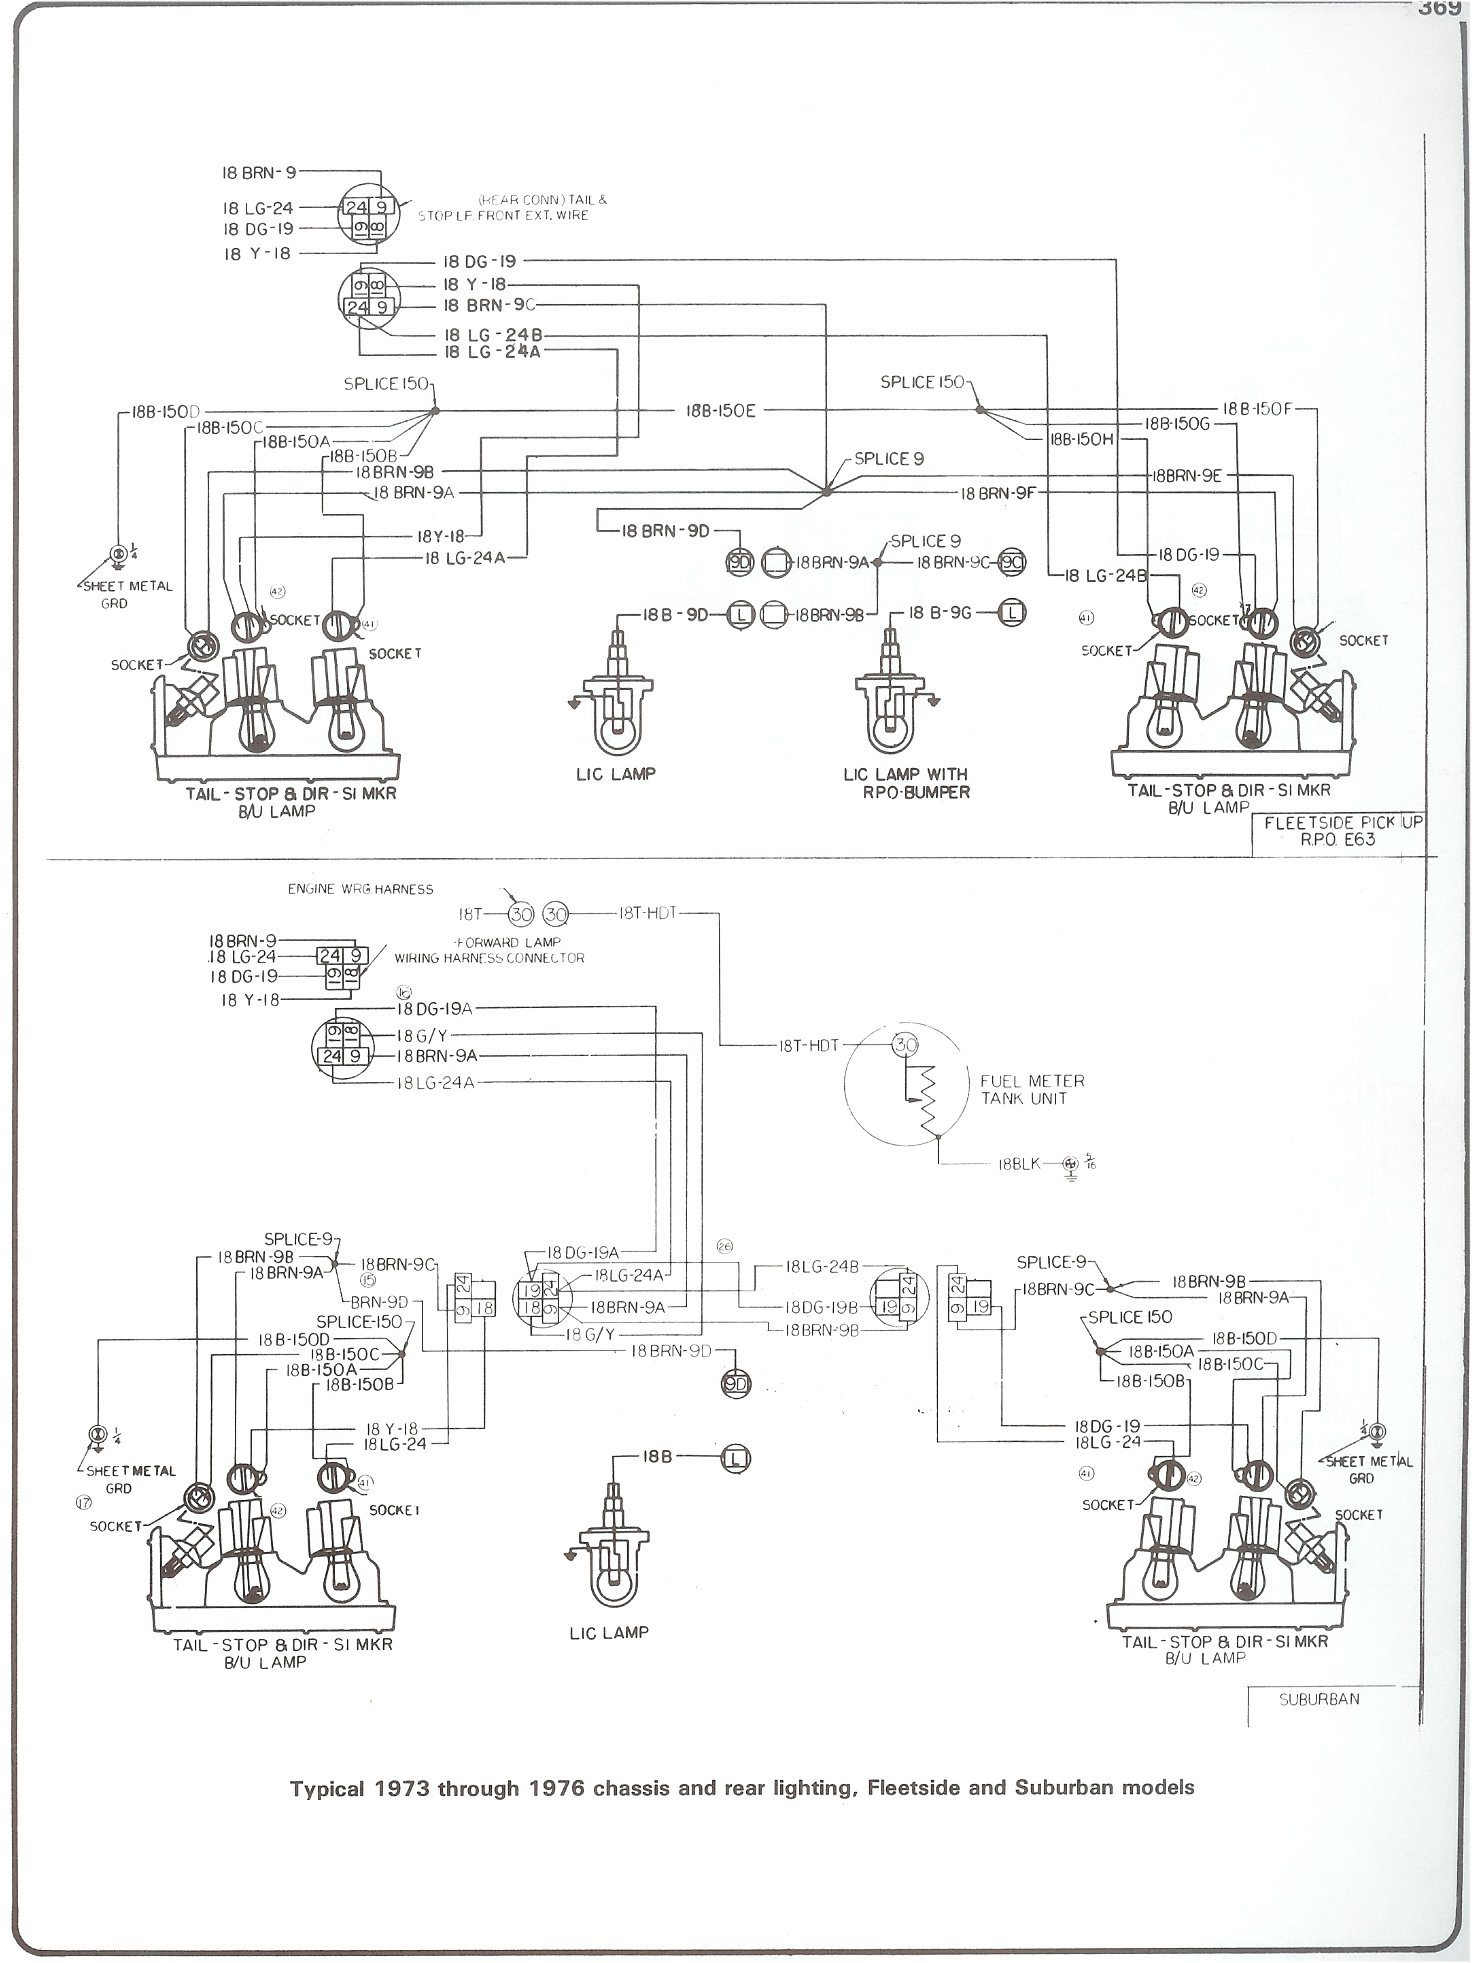 Starter Wiring Diagram For 1979 Chevy Truck Manual E Books 1970 Gmc C10 Complete 73 87 Diagrams73 76 Chassis Rear Lighting Fleetside And Suburban